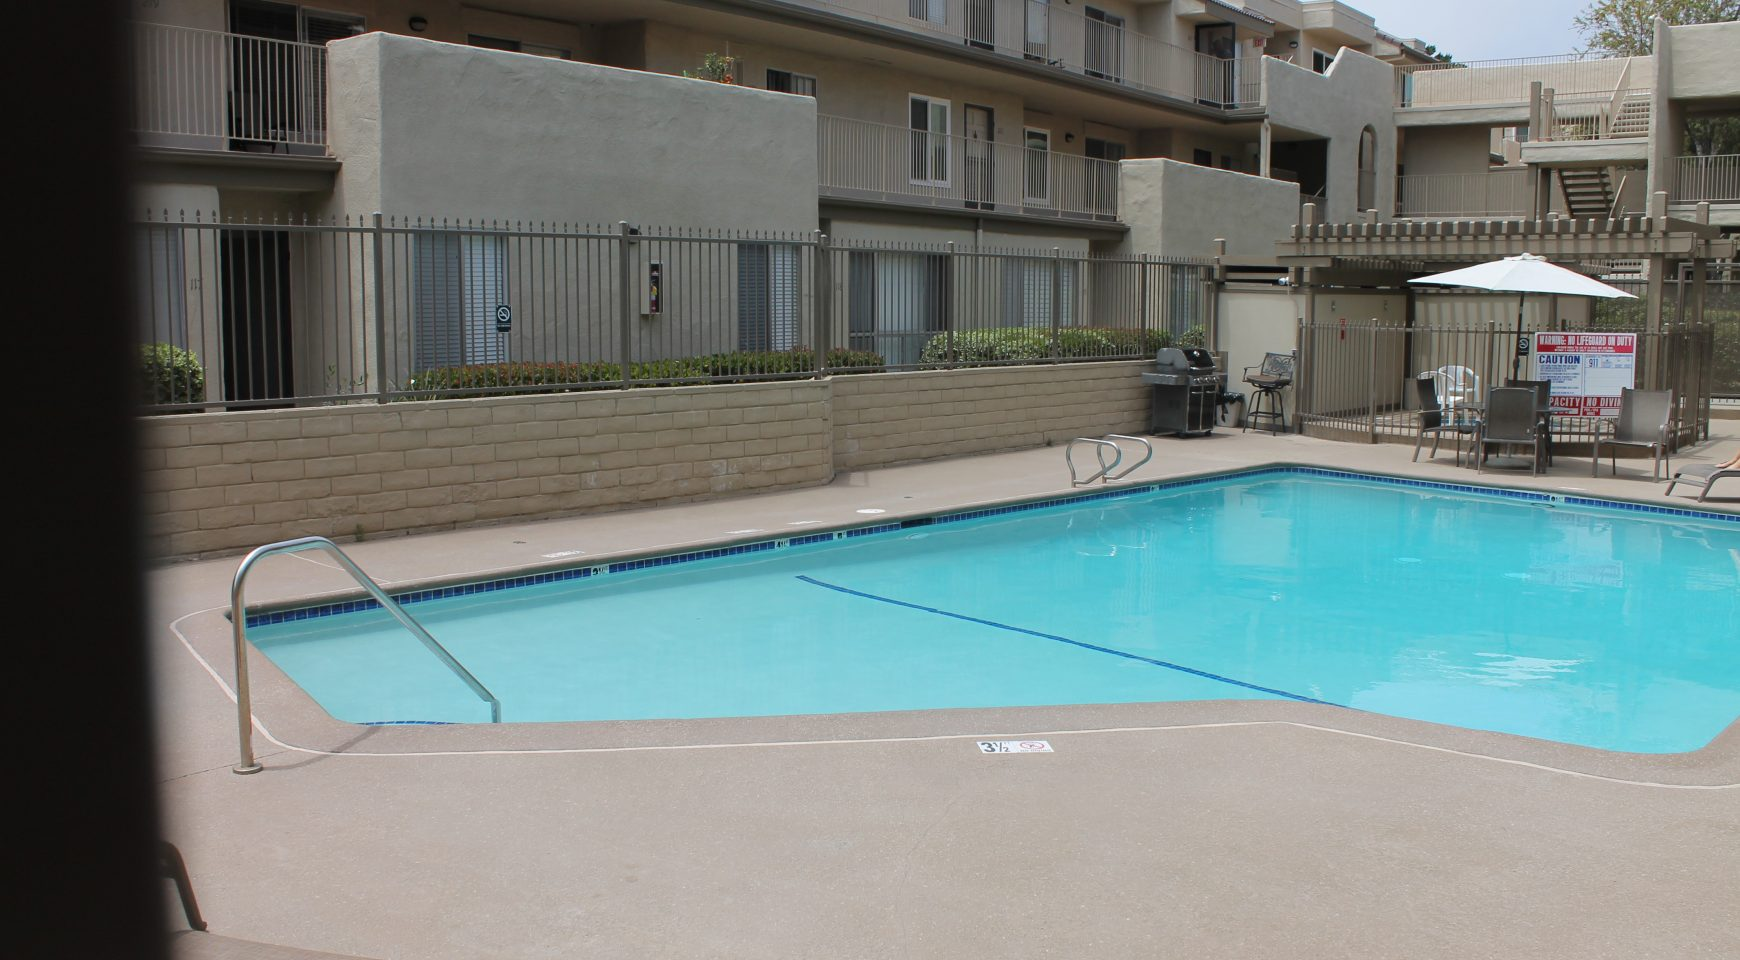 Sophisticated & Coastal 1 Bed 1 Bath – BD360 Realty, a BD Holdings ...